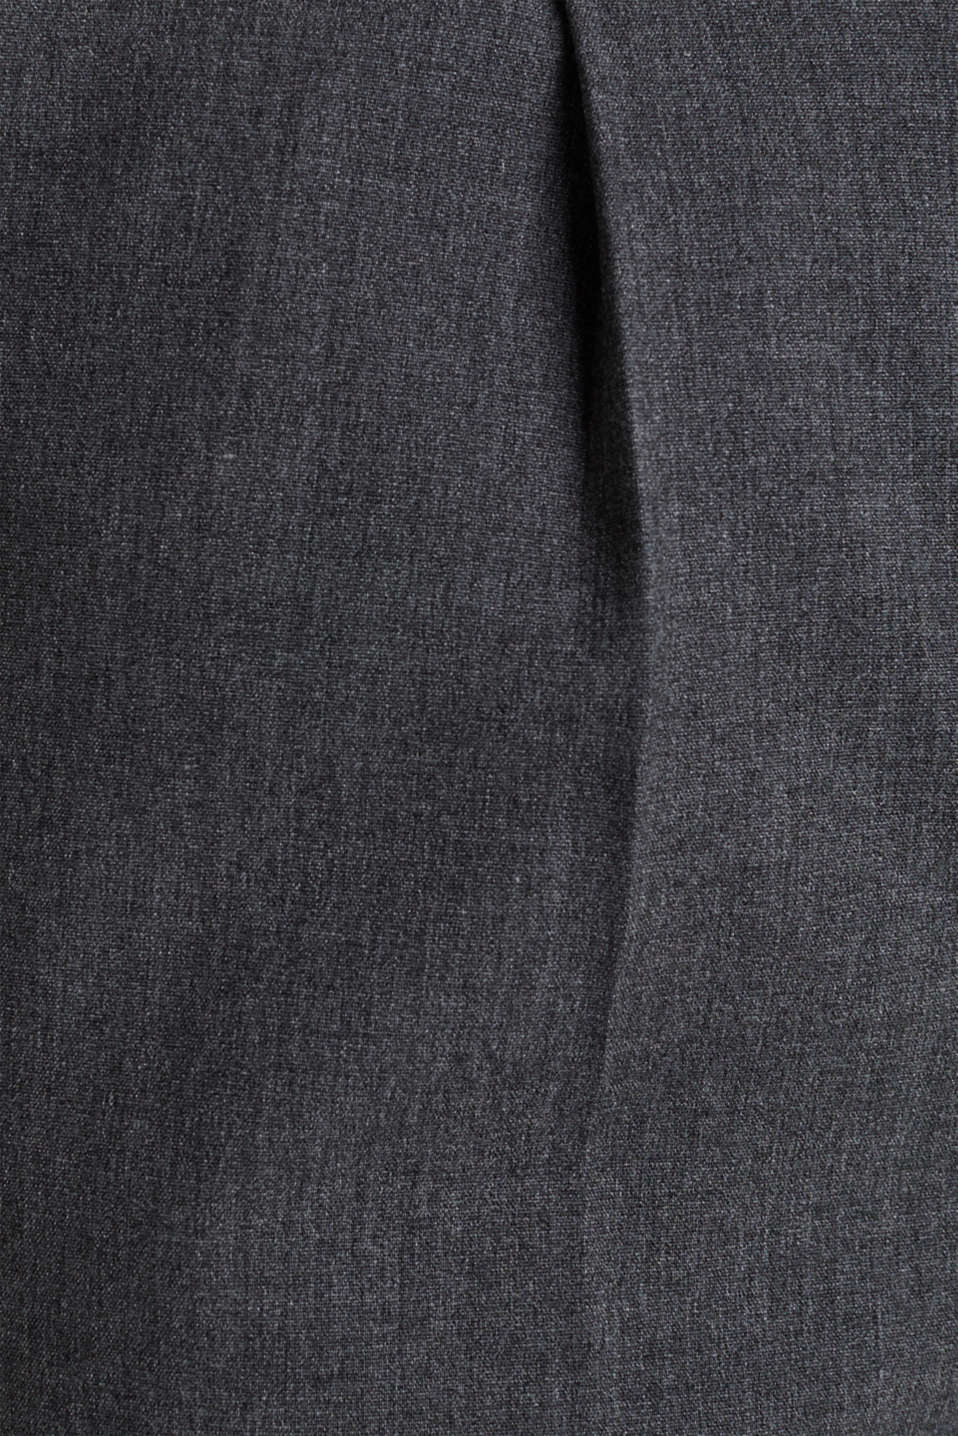 PURE BUSINESS stretch trousers with waist pleats, MEDIUM GREY 5, detail image number 4